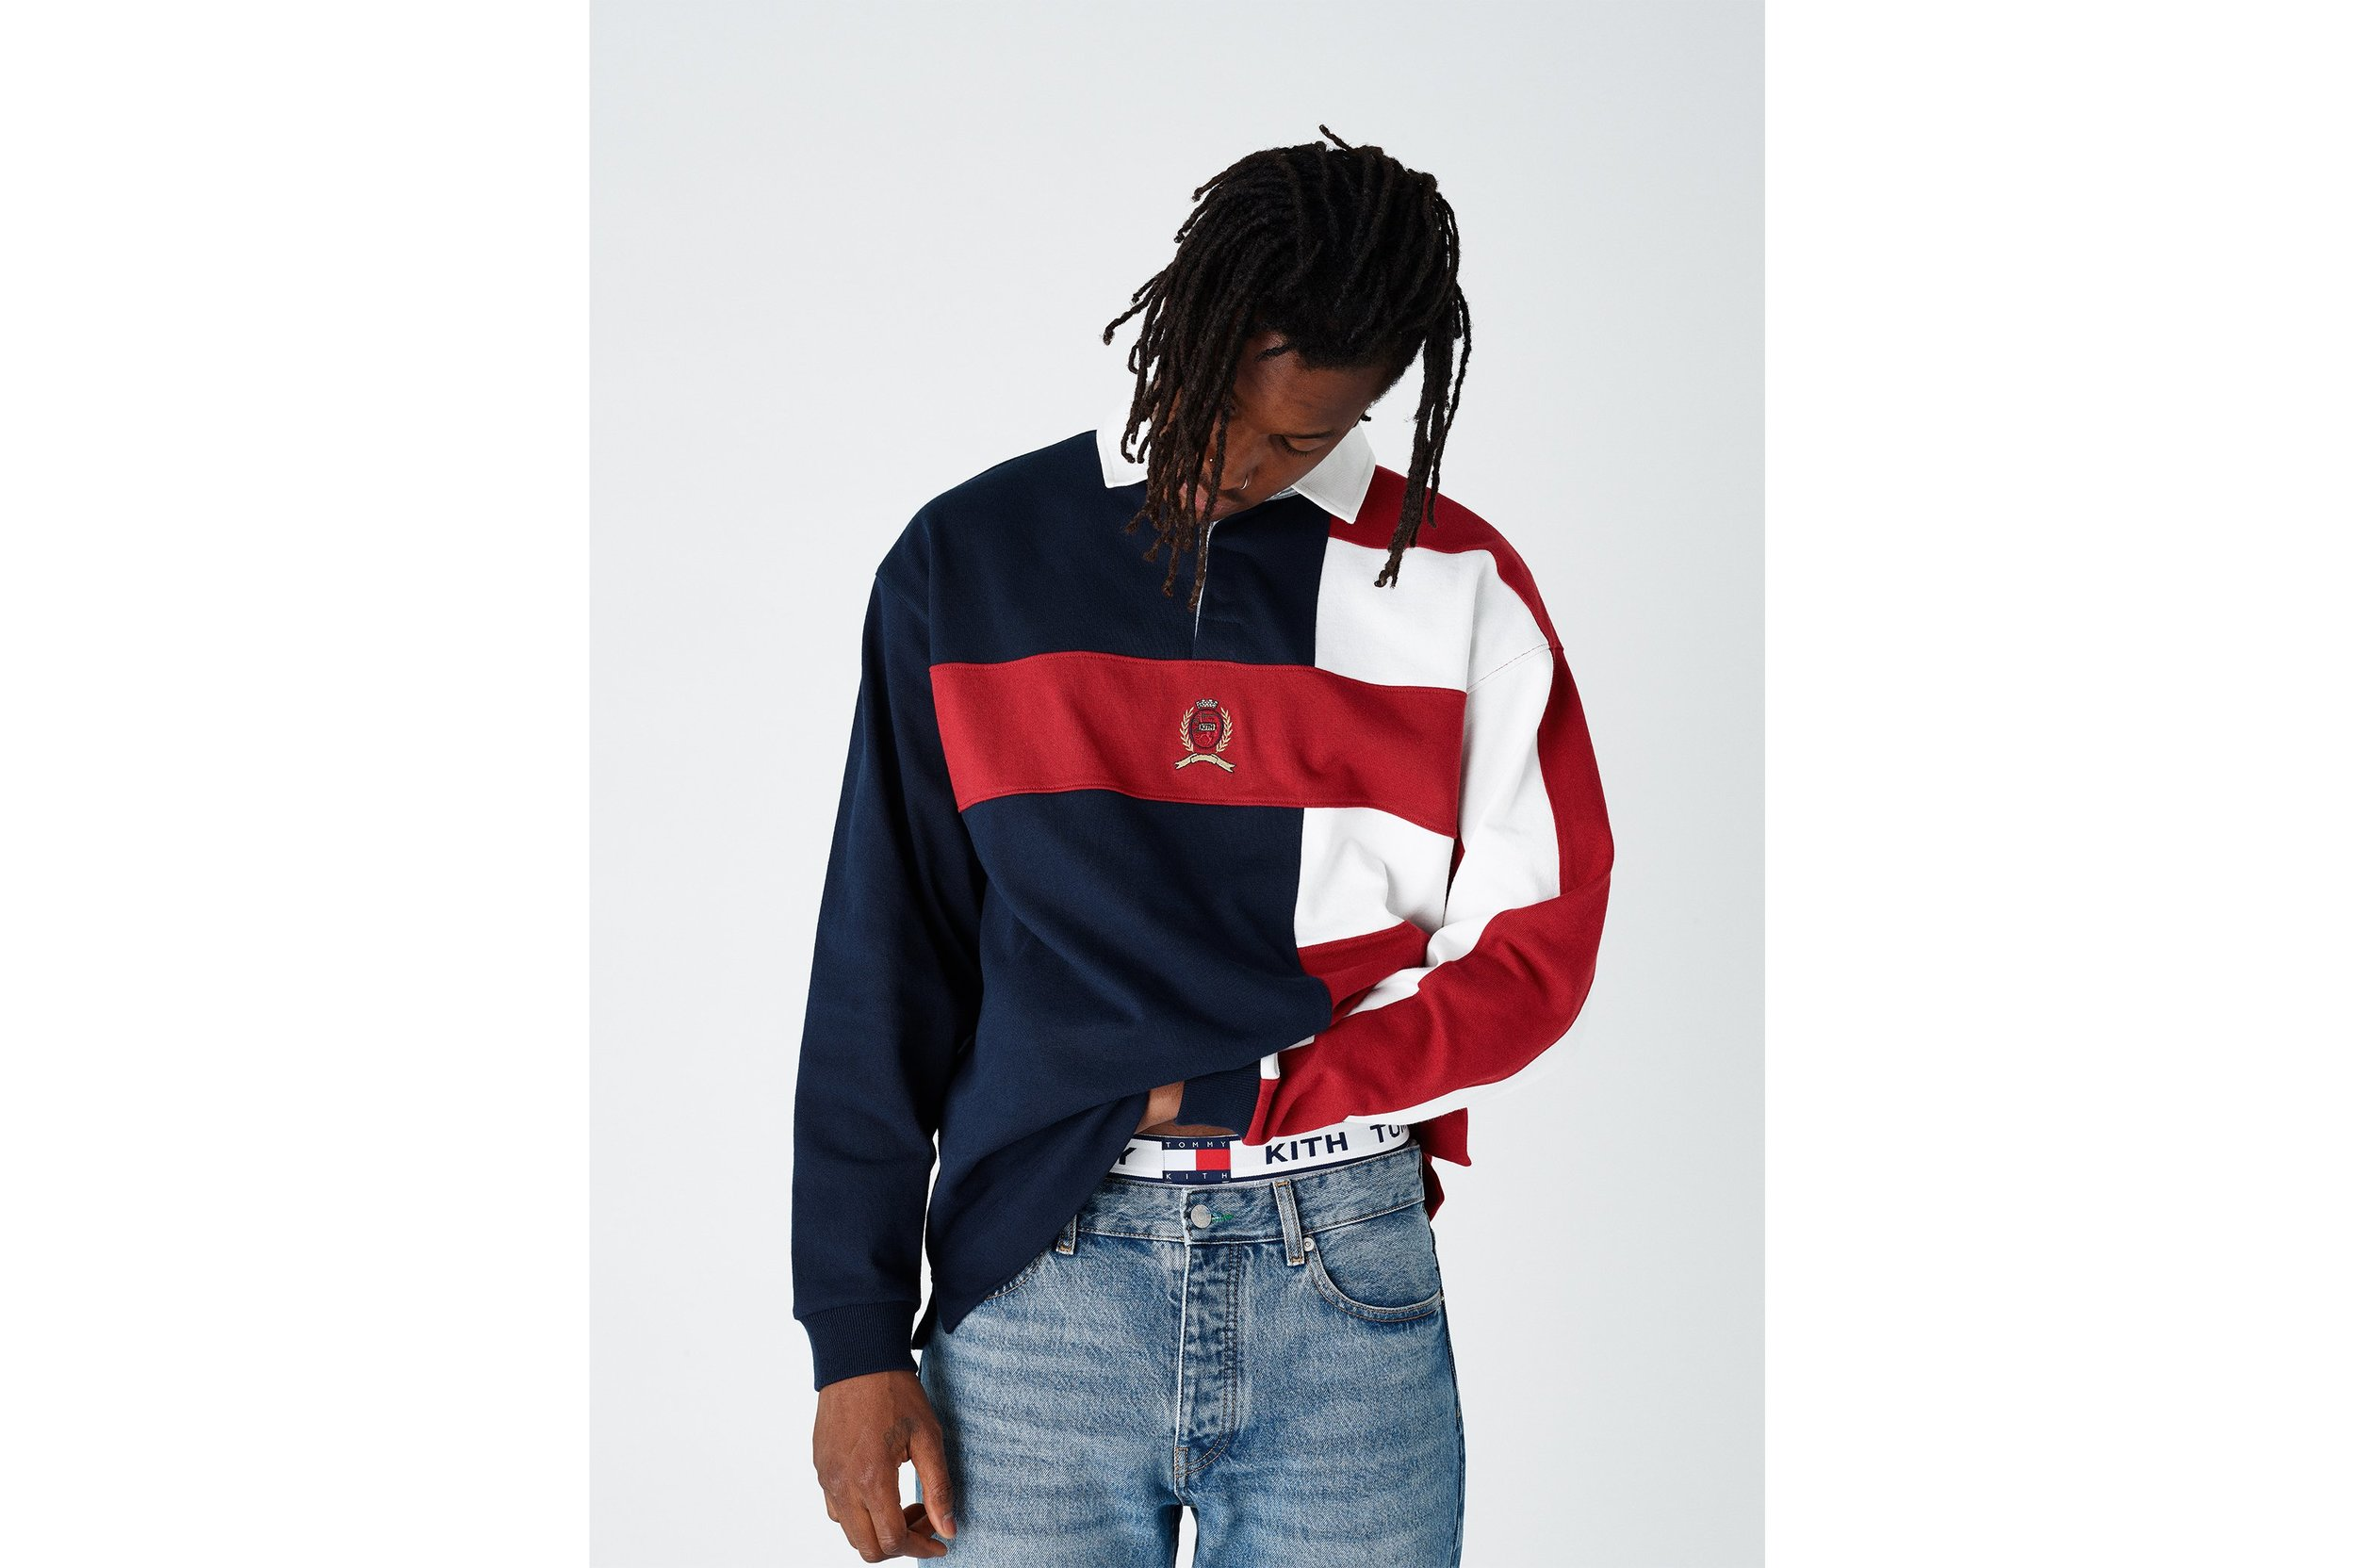 030e893da KITH X TOMMY HILFIGER FW18 LOOKBOOK — The Sole Truth